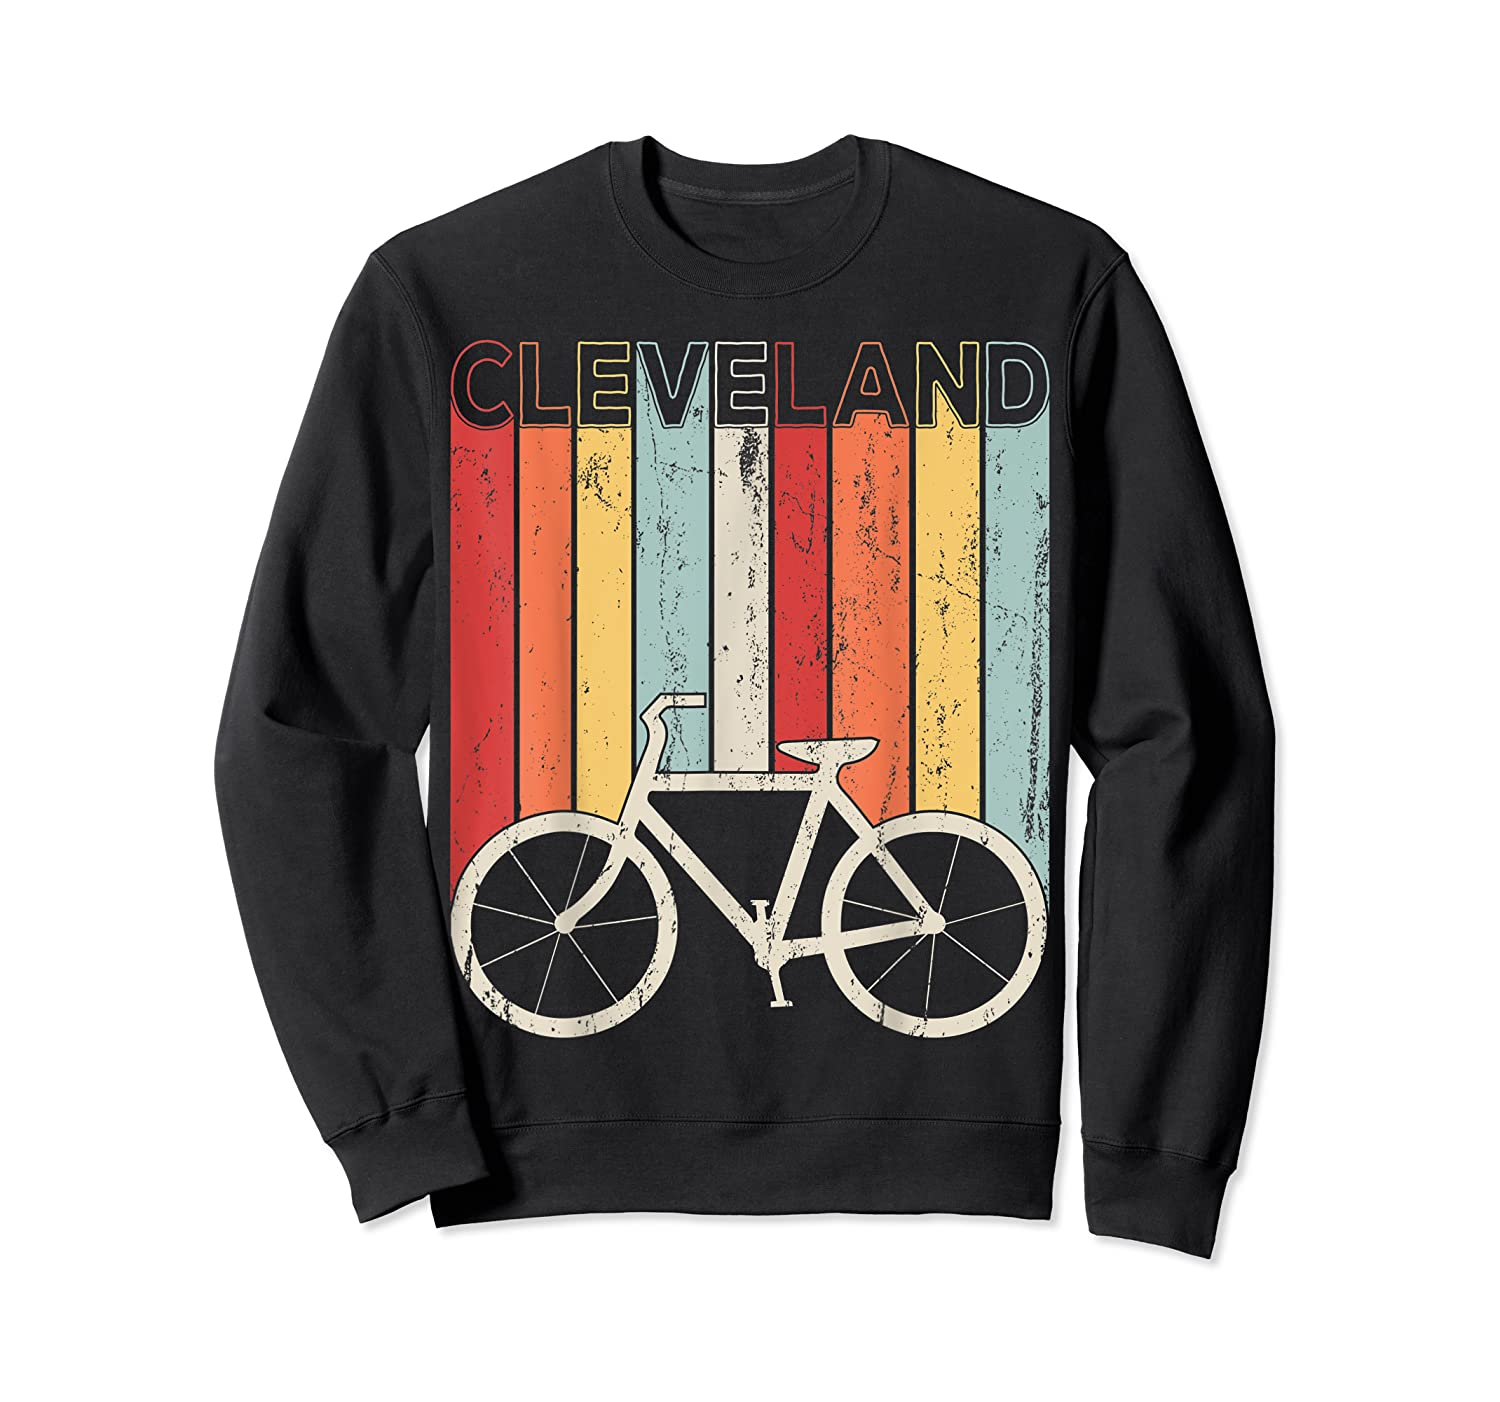 Retro Vintage Cleveland City Cycling Shirt For Cycling Lover Crewneck Sweater